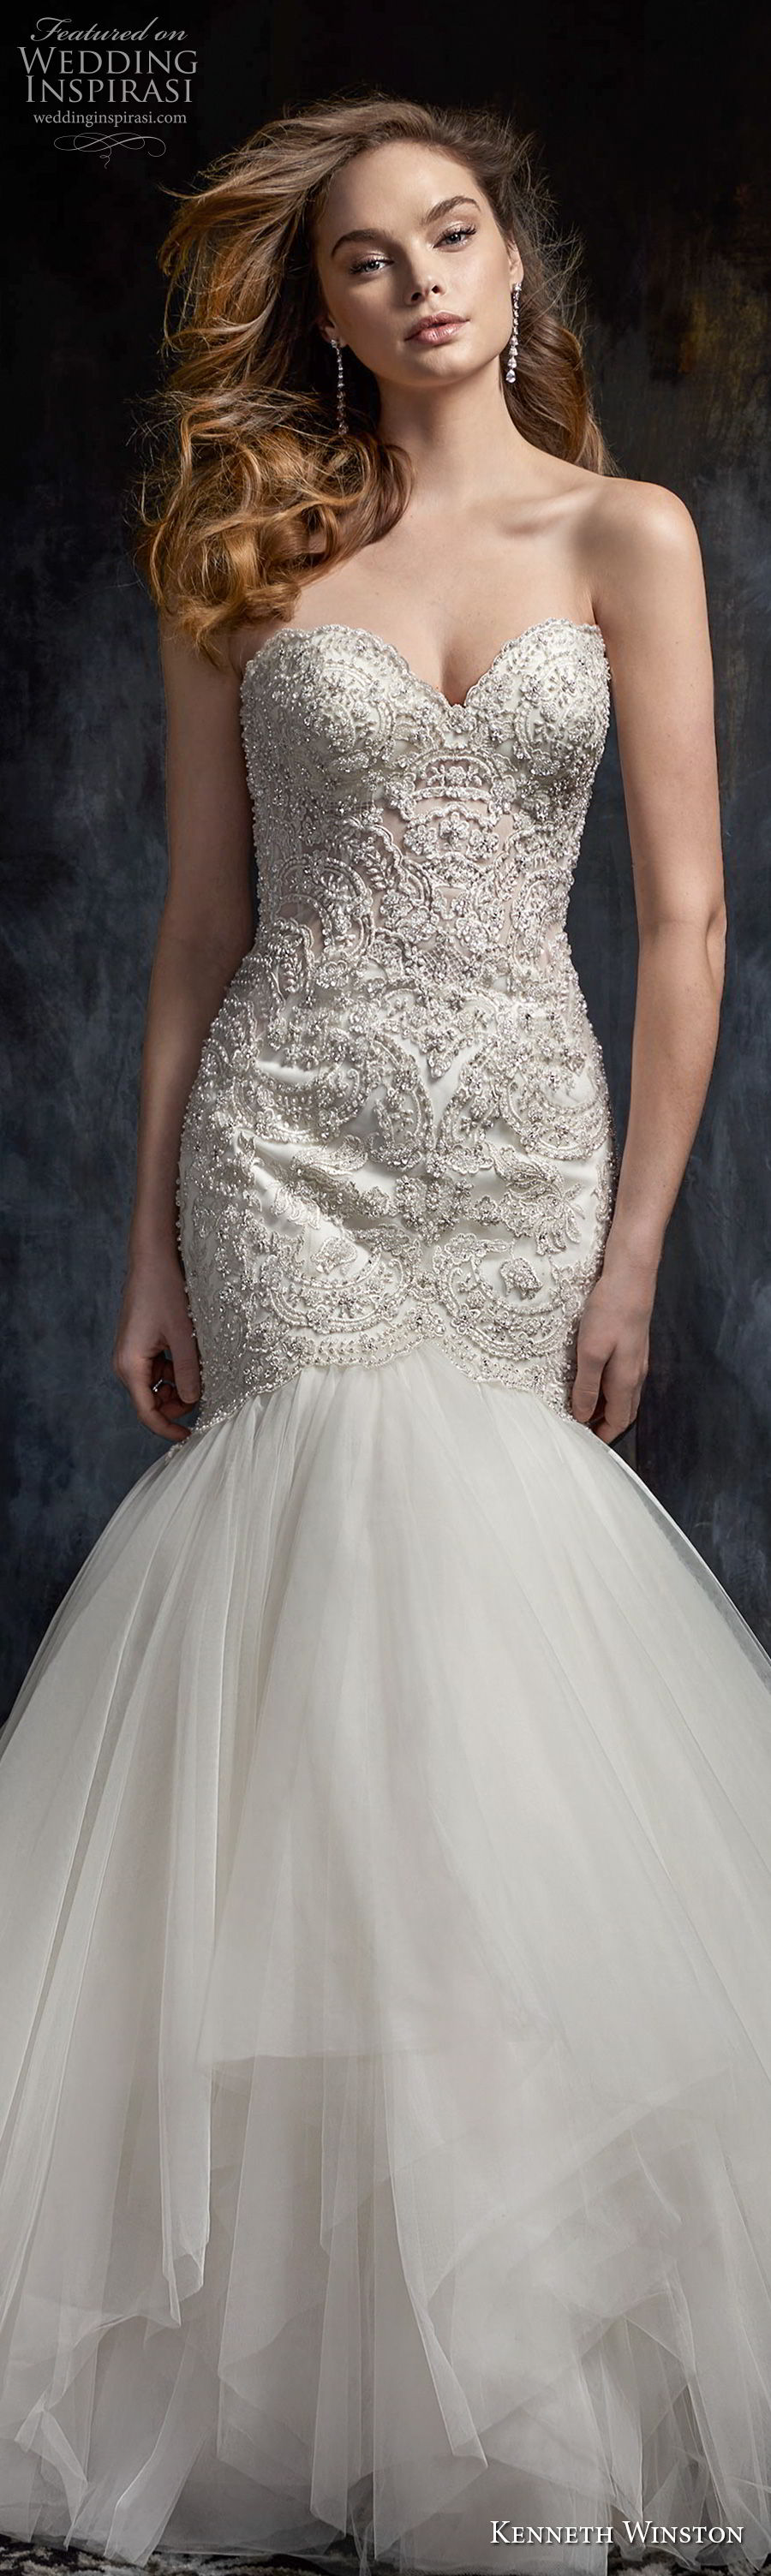 kenneth winston fall 2017 bridal strapless sweetheart neckline heavily beaded bodice elegant mermaid wedding dress chapel train (47) lv